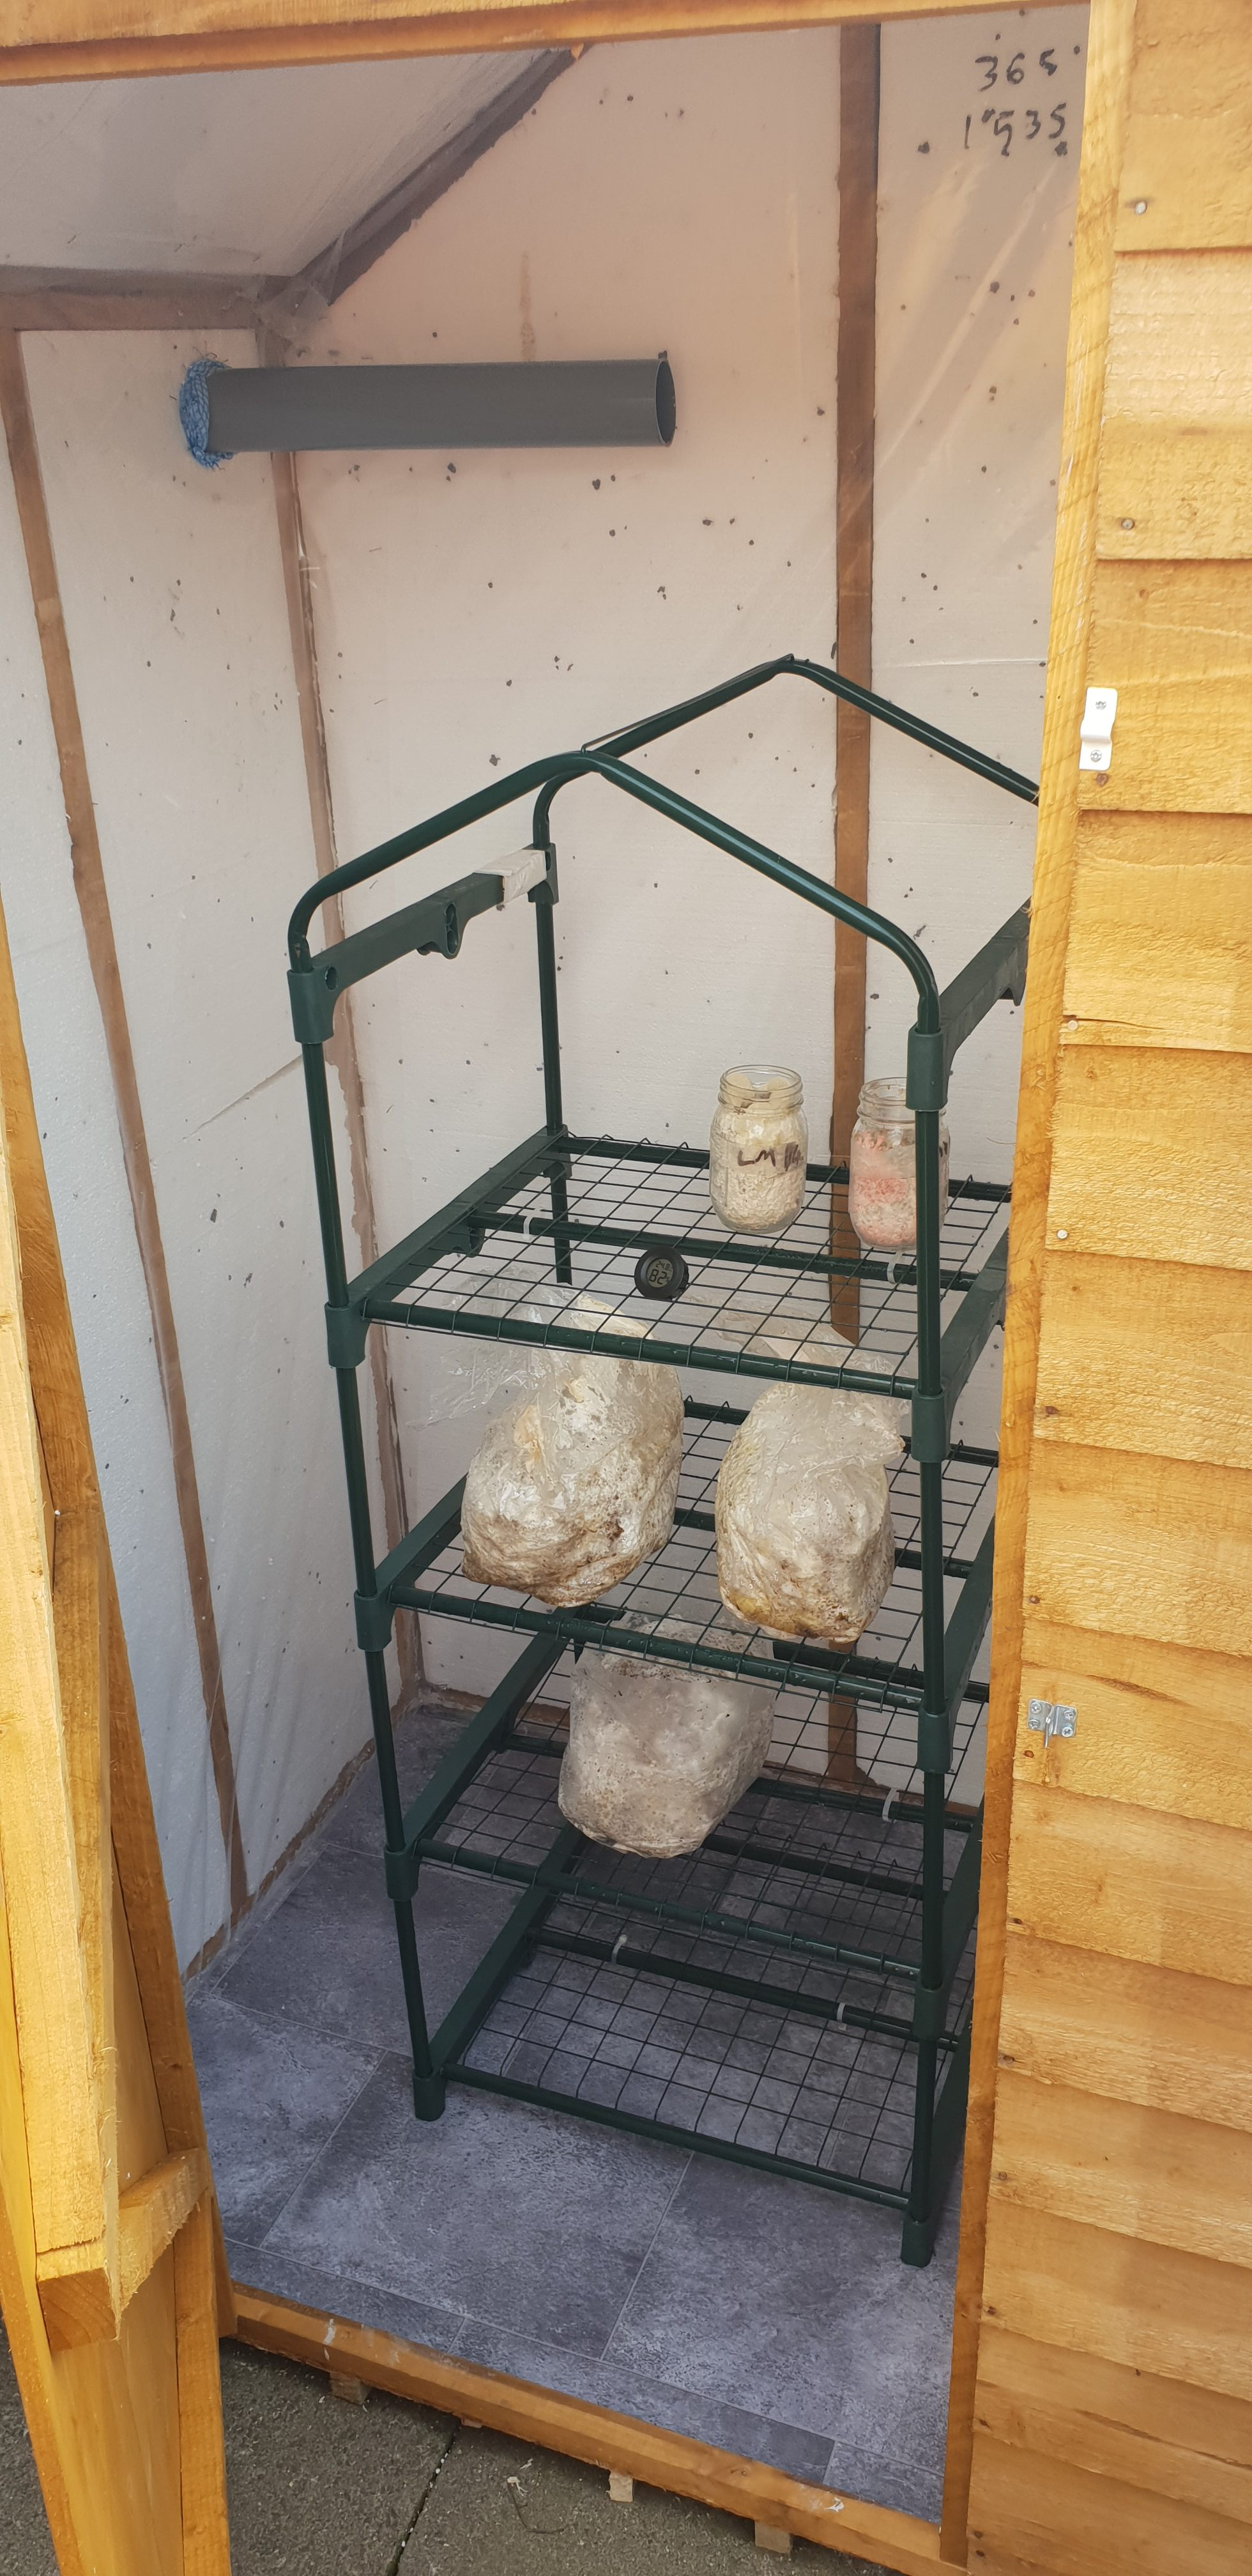 Homemade Shed Fruiting Chamber | Archers Mushrooms | Mushroom Blogs | Mushroom Growing | Mushroom Tips | Mushroom Business